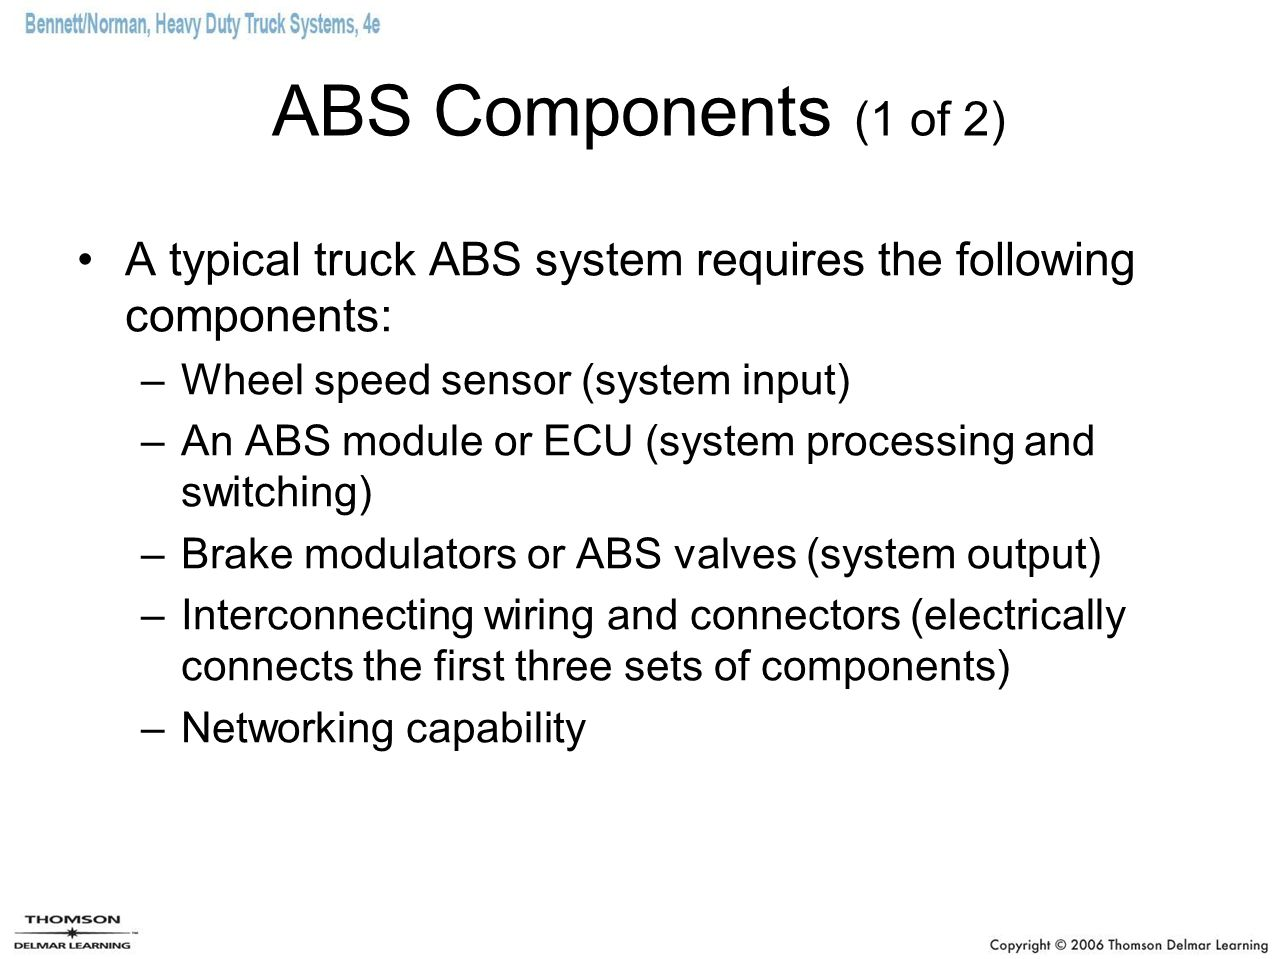 ABS Components (1 of 2) A typical truck ABS system requires the following components: –Wheel speed sensor (system input) –An ABS module or ECU (system